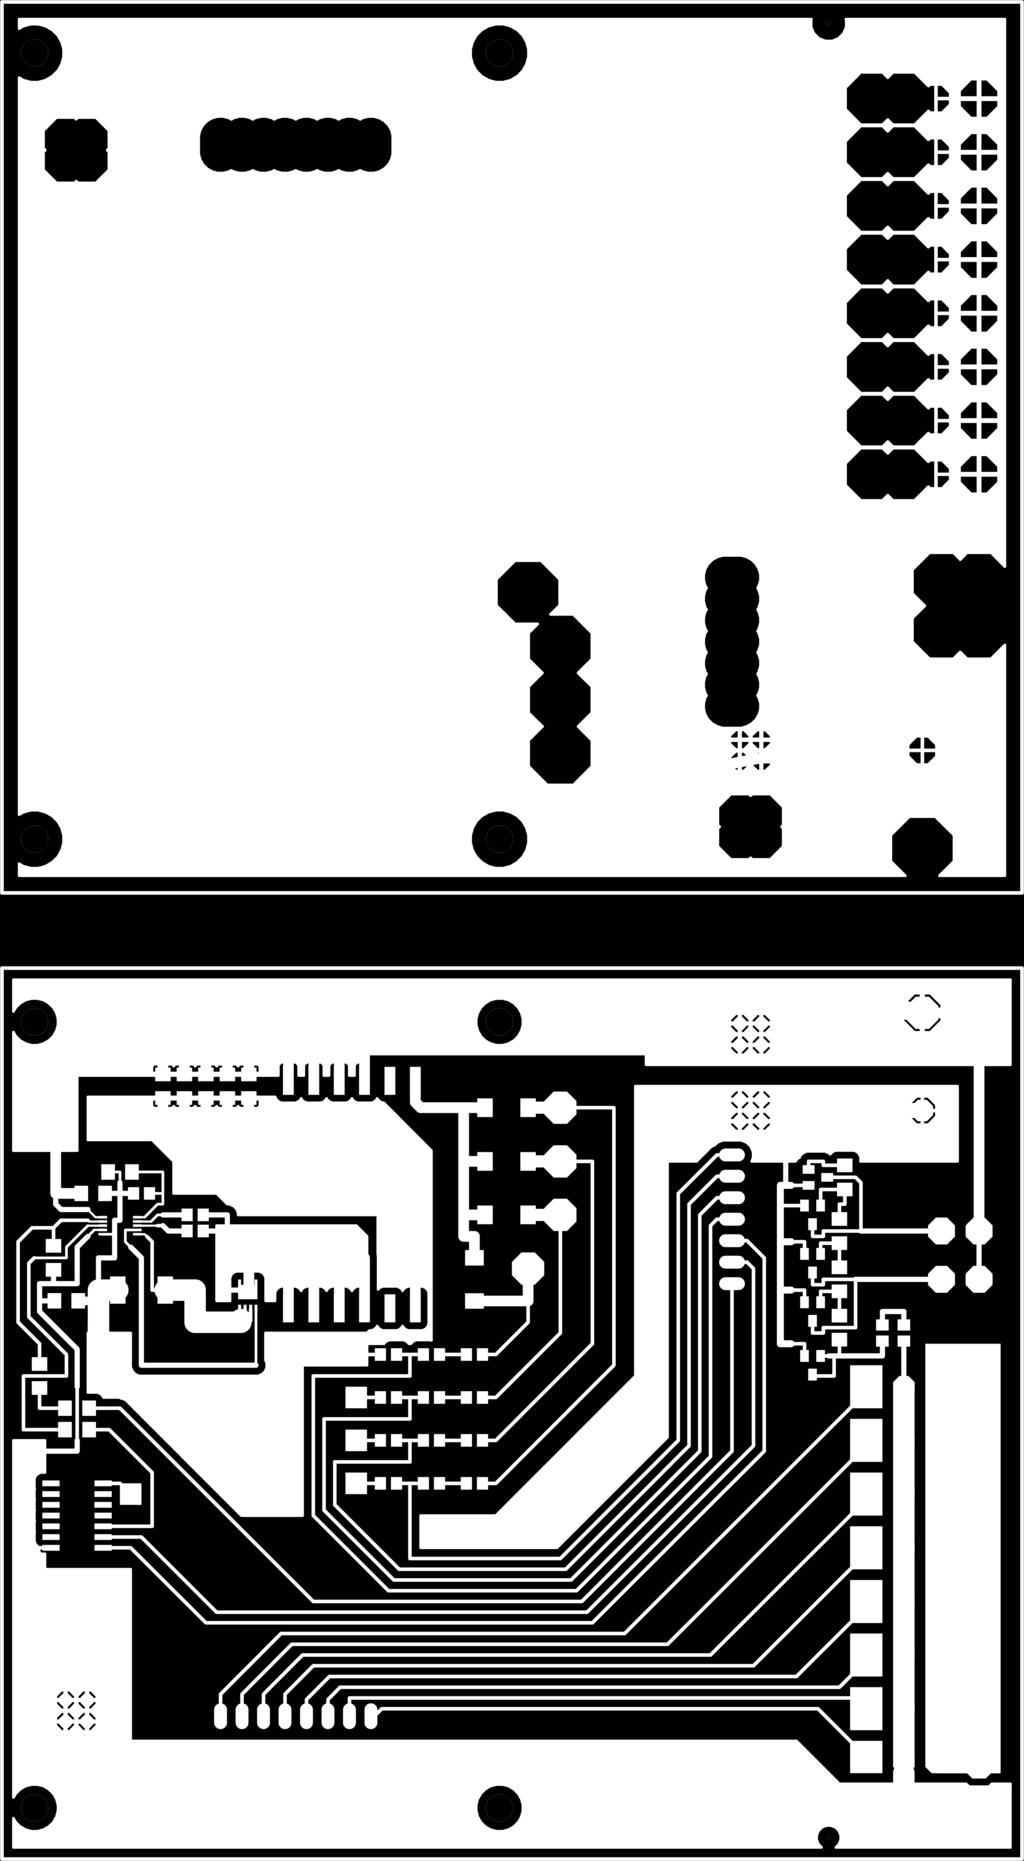 Vysok Uen Technick V Brn Pdf Coil Gun Working Schematic Representation Of The Rlc Circuit Layout